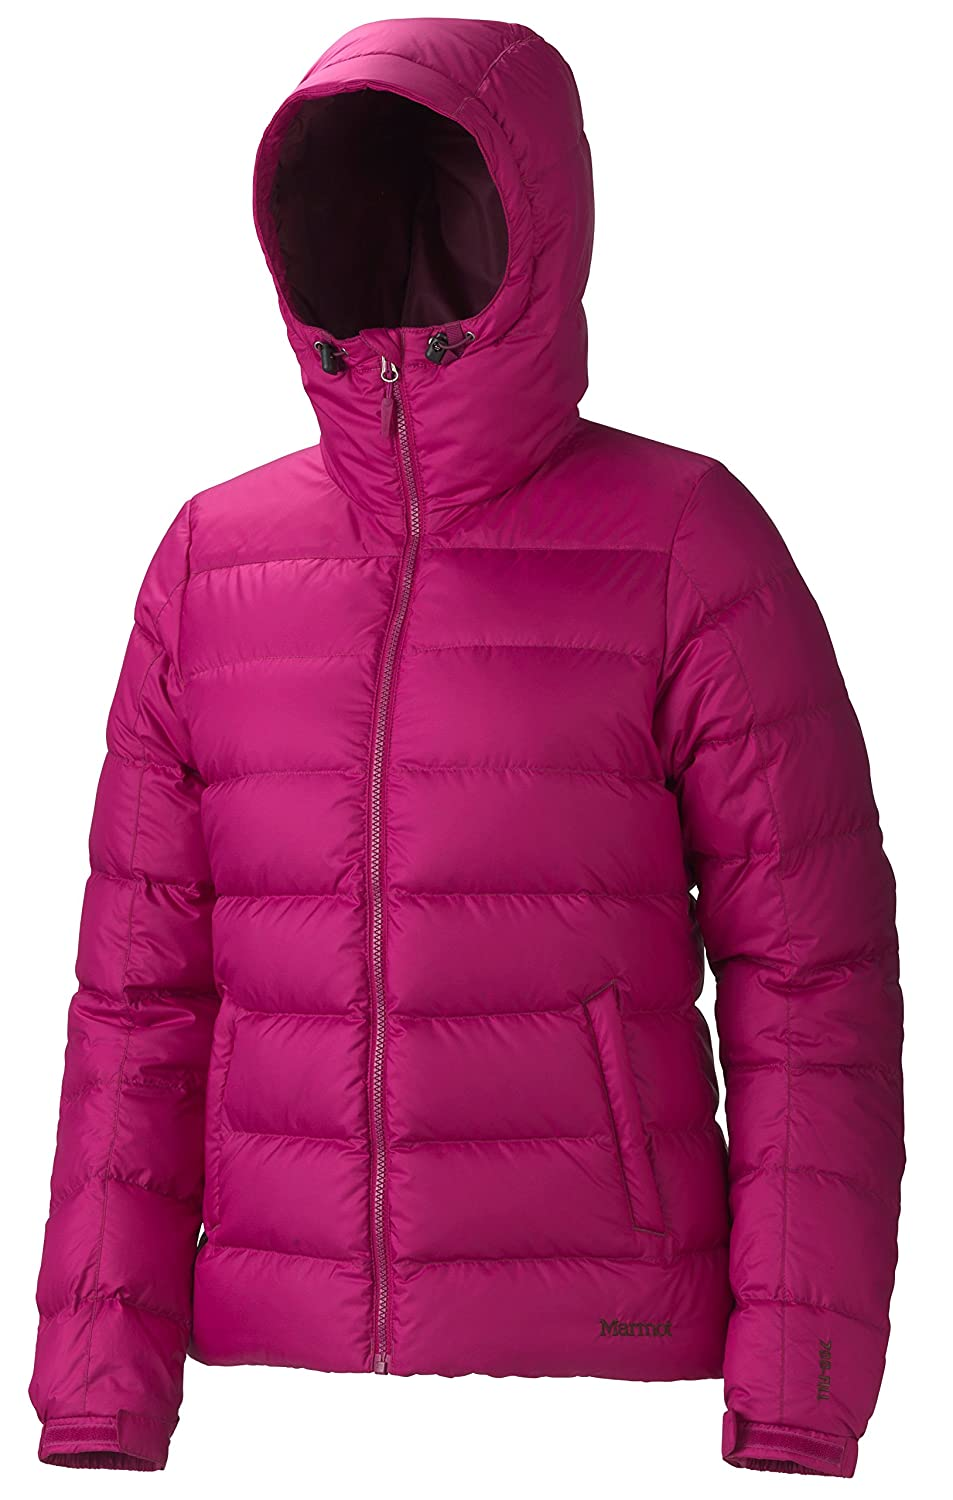 Marmot Guides Down Hoody Women plum rose 2014